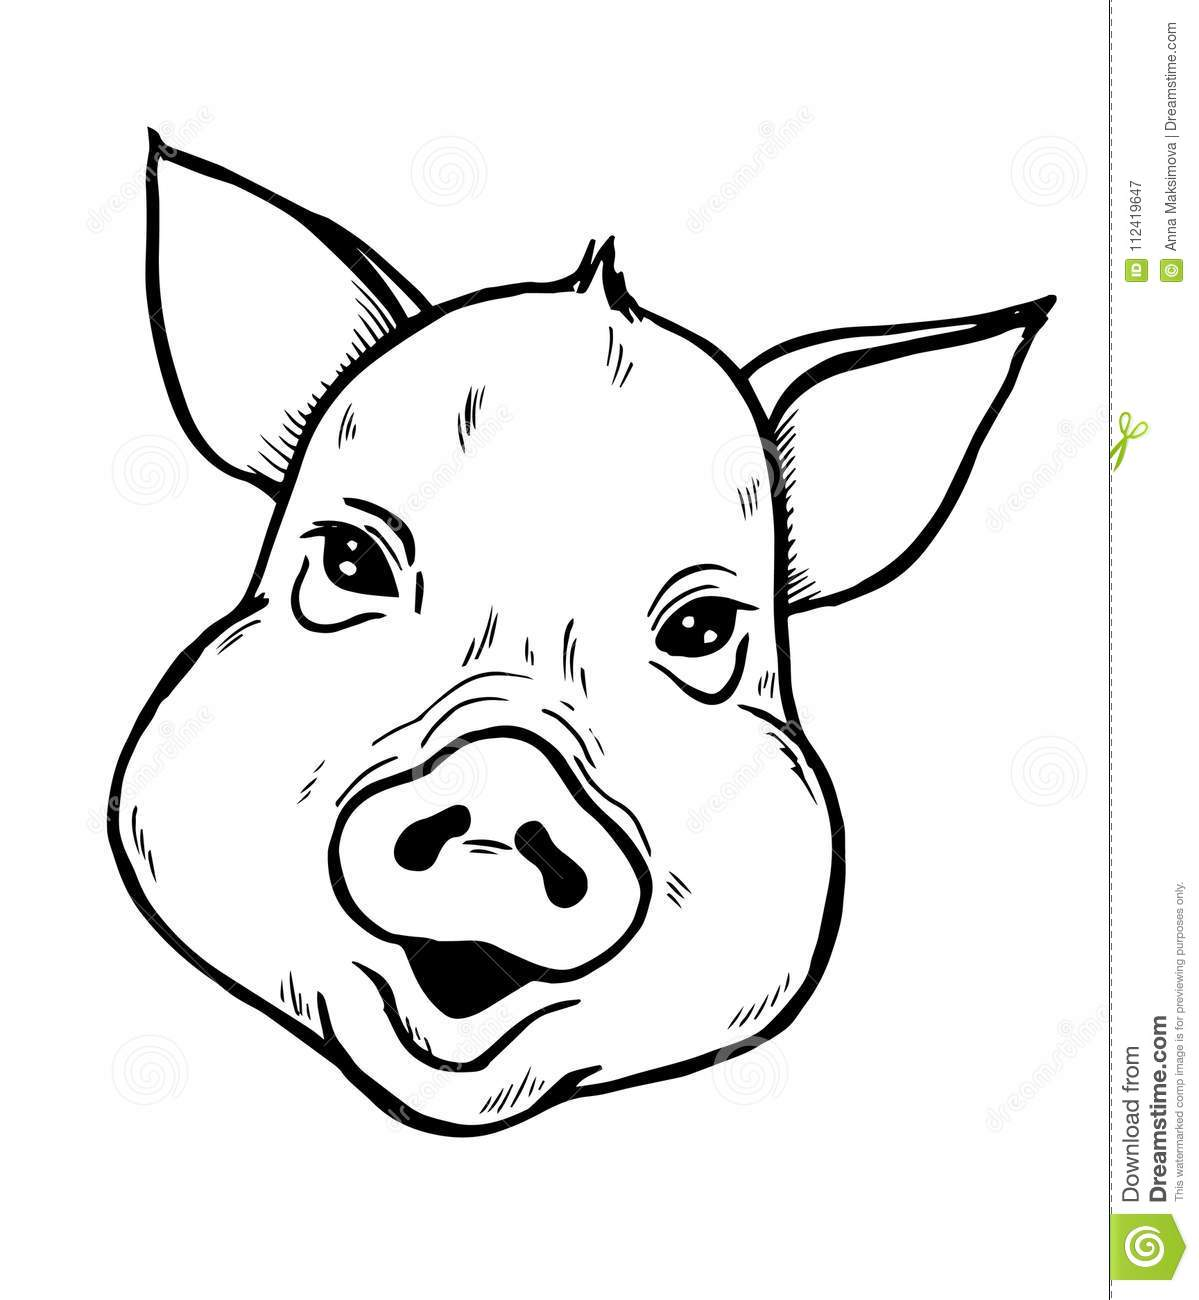 Pig Head Sketch Black And White Illustration Stock Vector